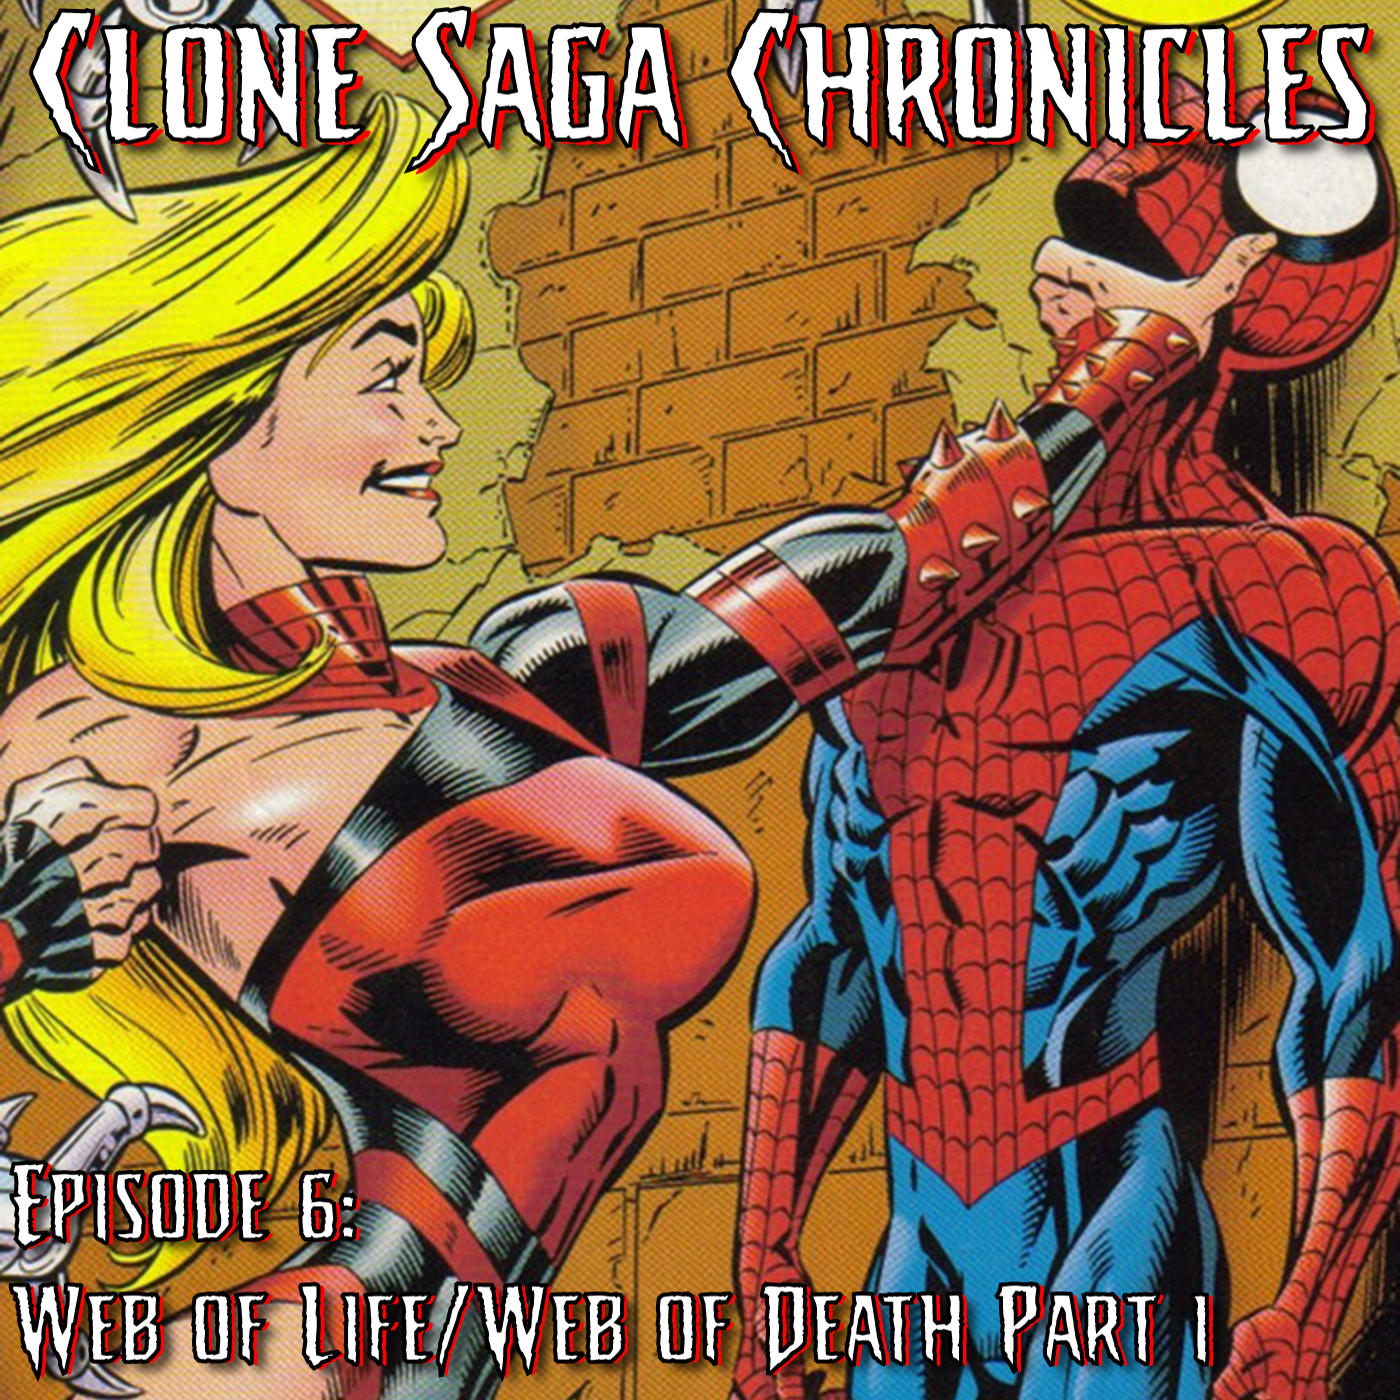 CSC Episode 6: Web of Death/Life Month 1 (Cover Date January 1995)